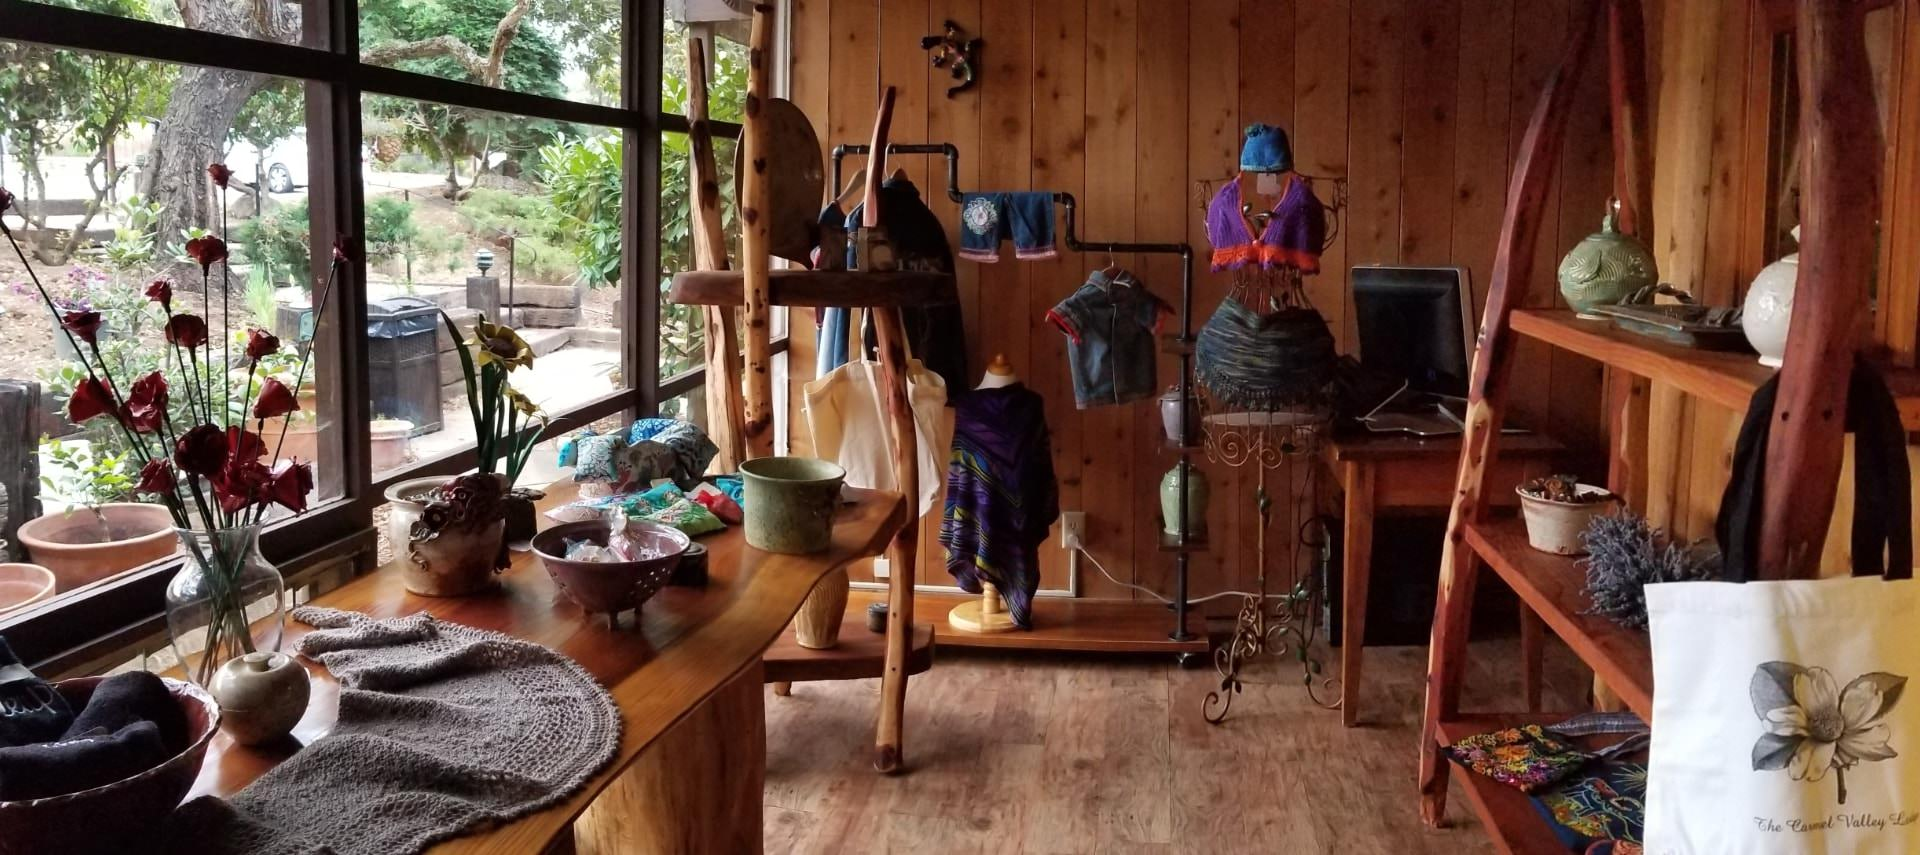 Small boutique shop with wooden furniture displaying gifts for sale